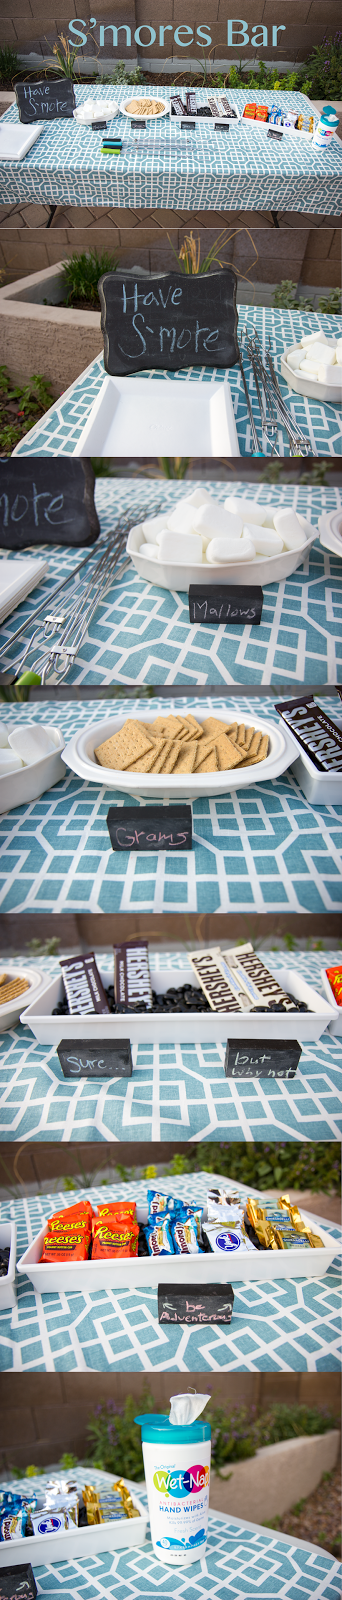 Creative S'mores Bar